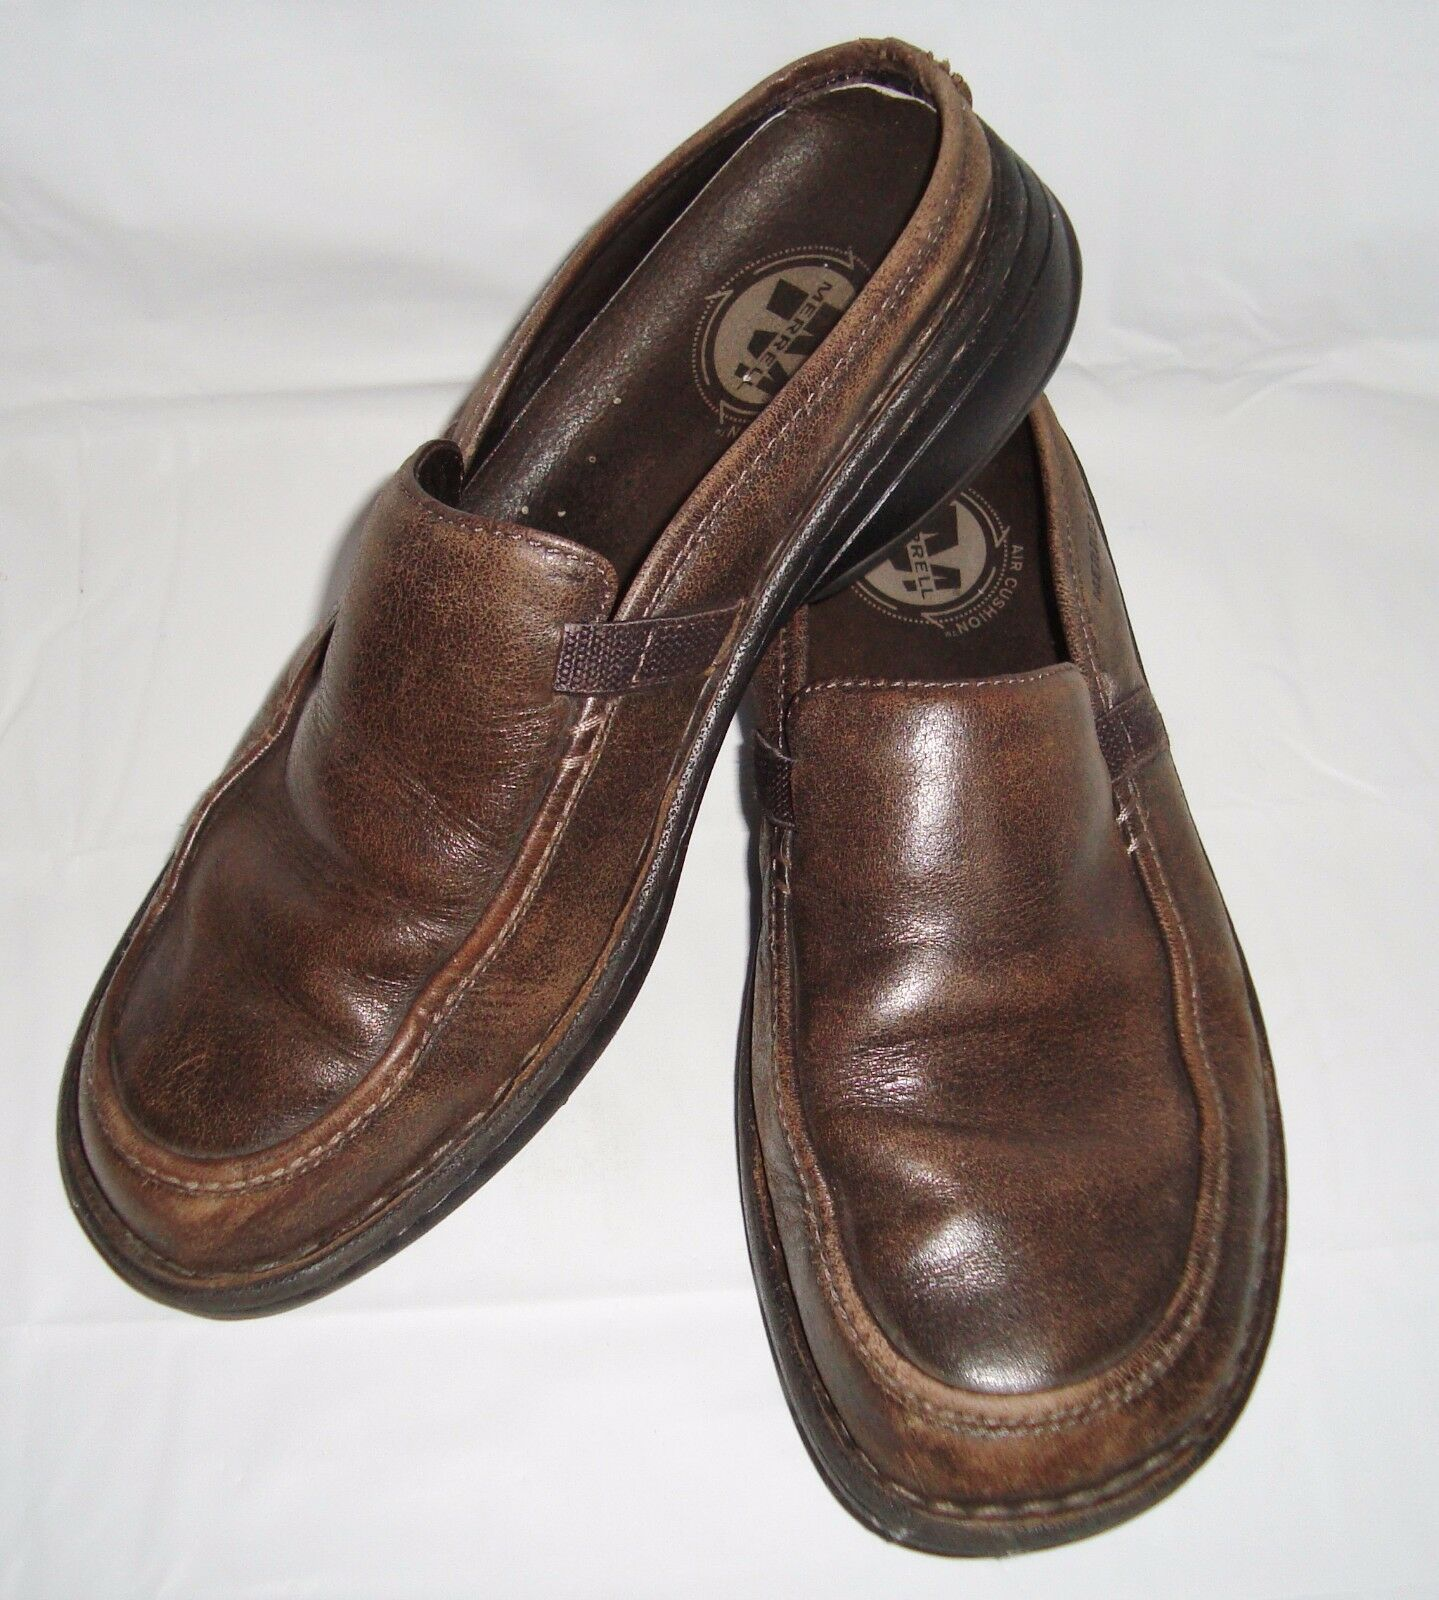 Merrell Tetra Slide Brown Leather Mules Dark Earth Brown 9.5 Slip On shoes